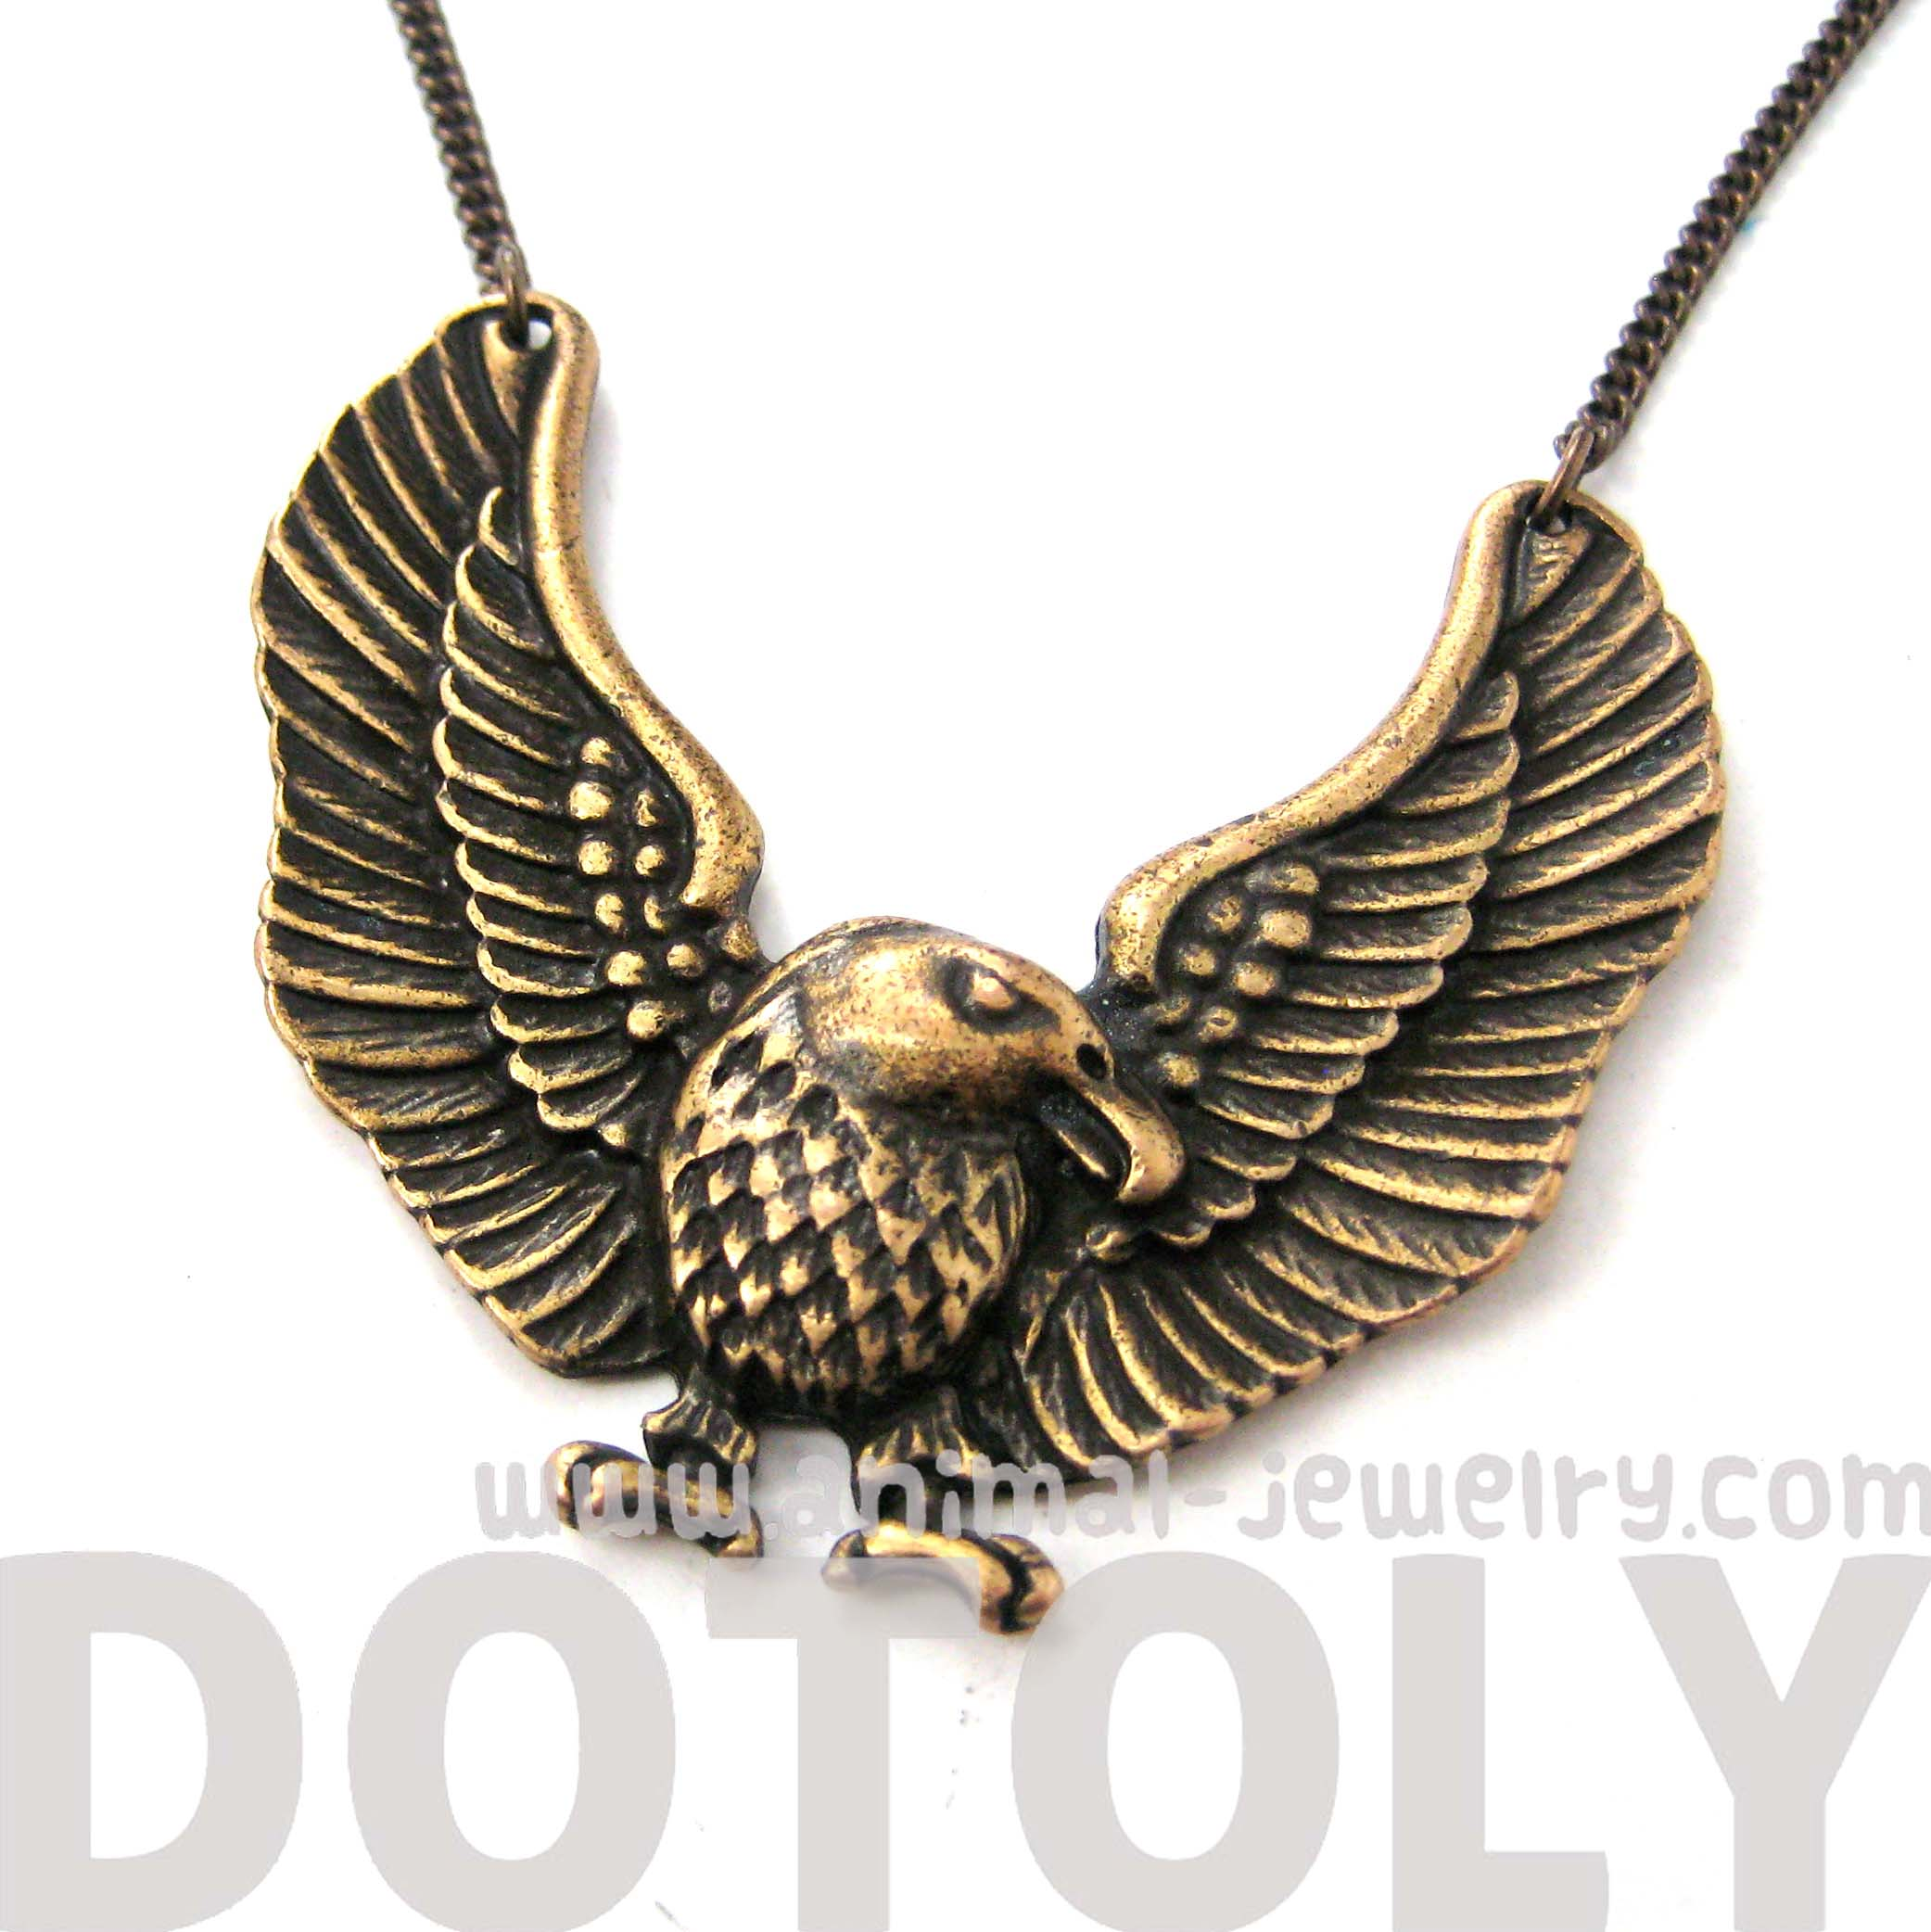 detailed eagle hawk bird shaped animal pendant necklace in